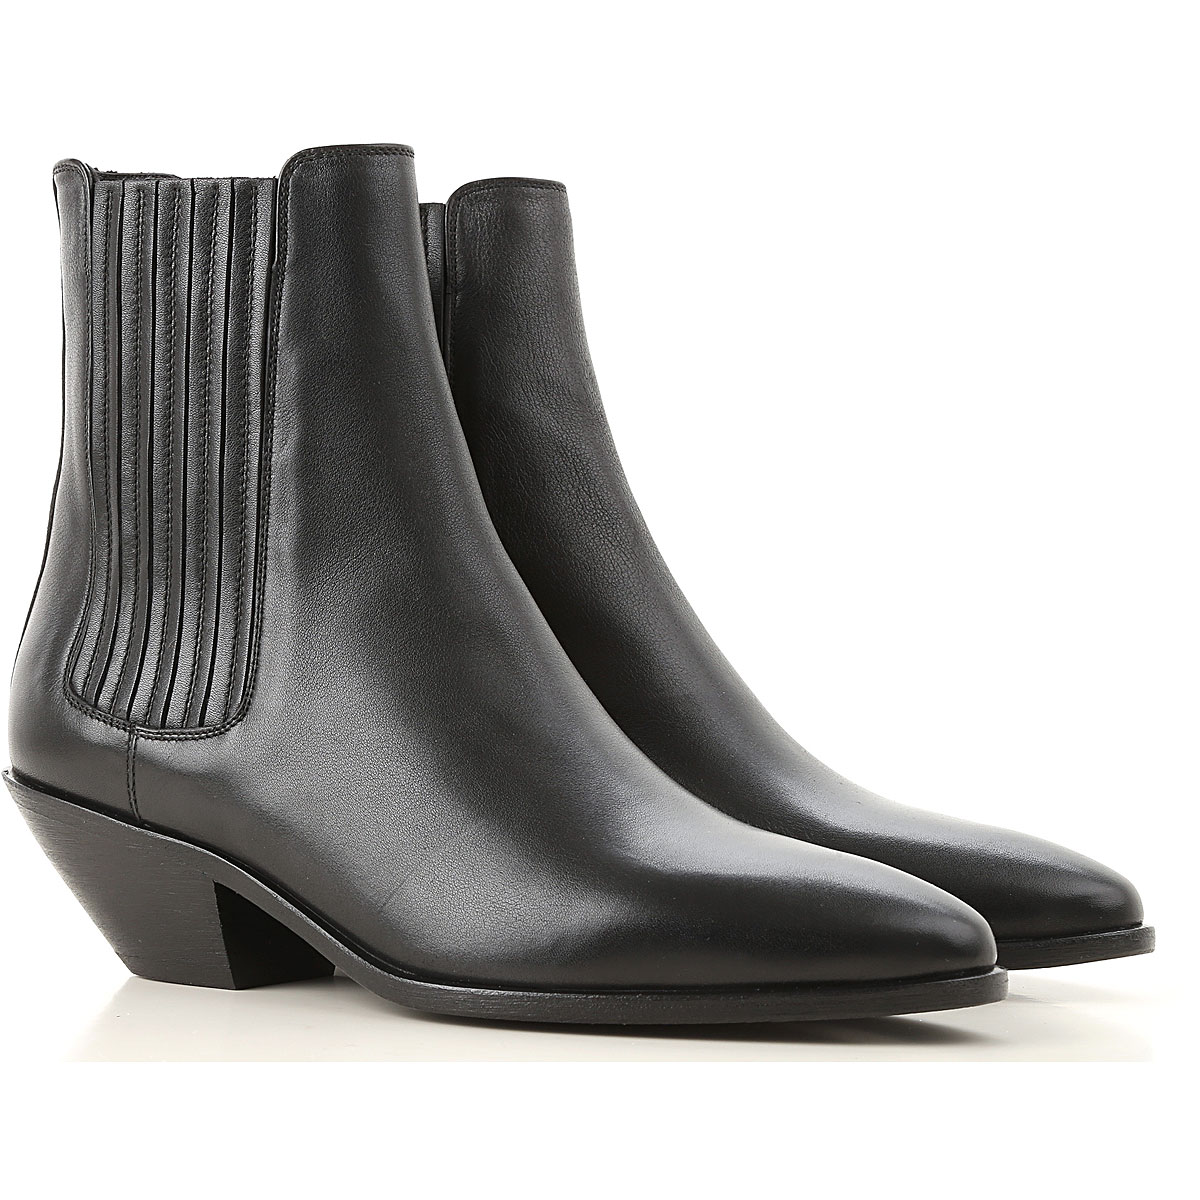 Yves Saint Laurent Boots for Women, Booties On Sale, Black, Leather, 2019, 10 5.5 6 7 8.5 9